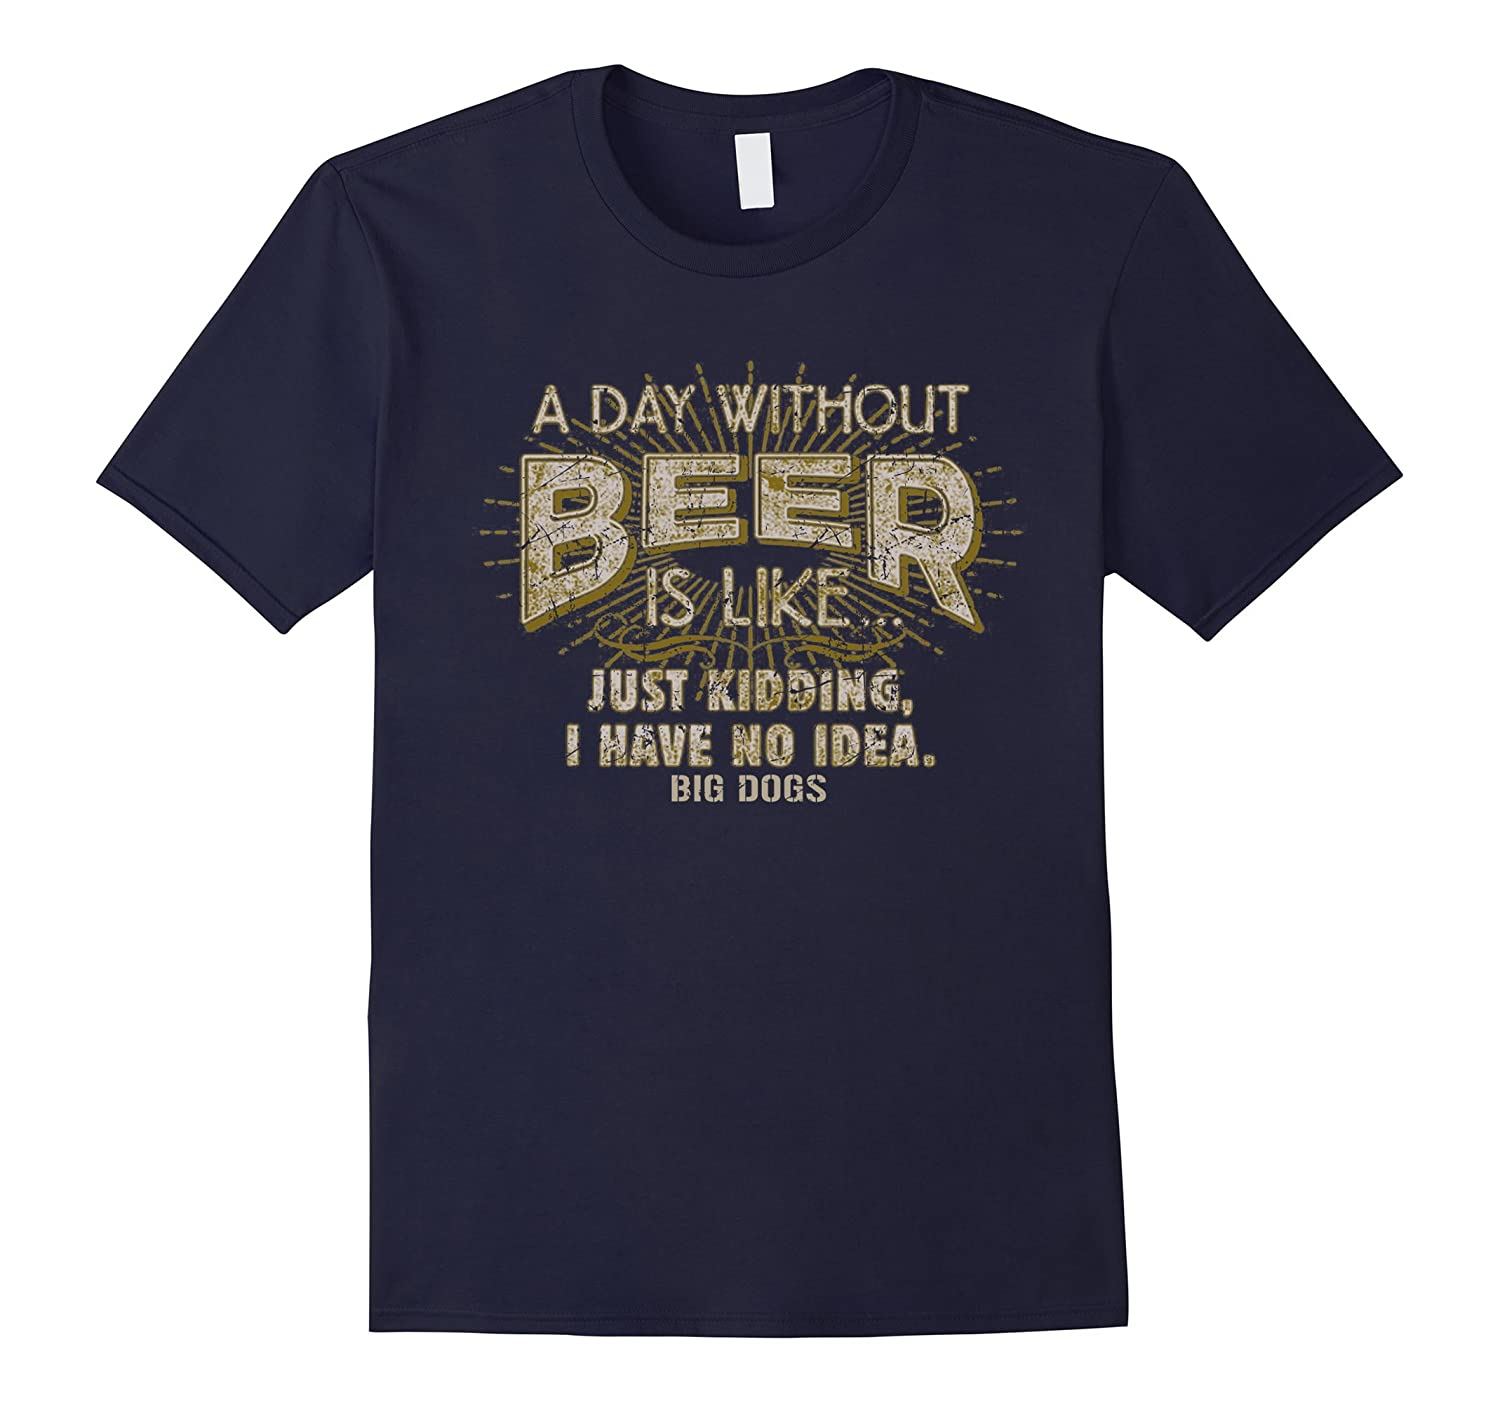 A DAY WITHOUT BEER IS LIKE JUST KIDDING T-SHIRTS-CD